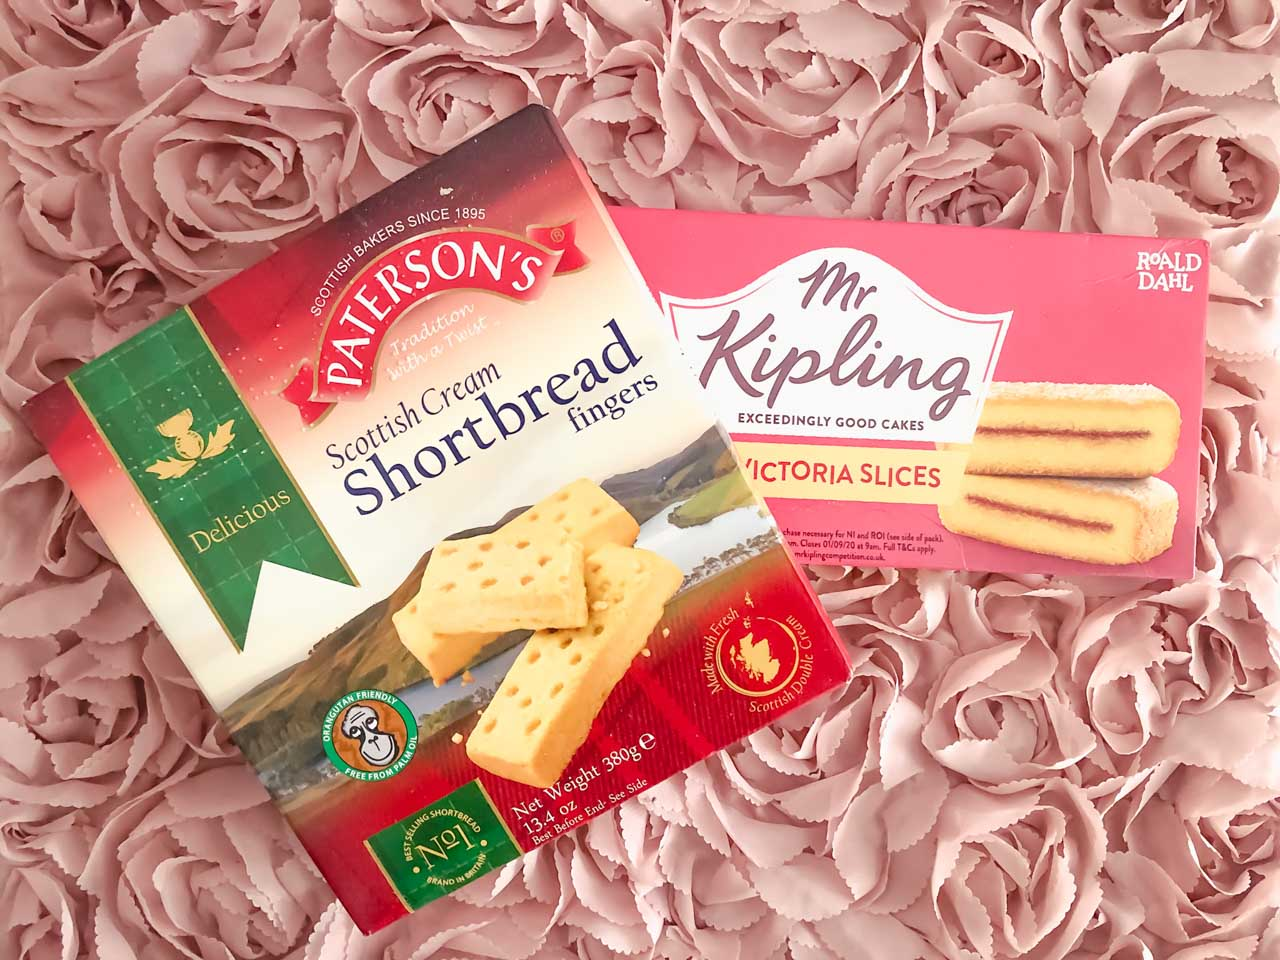 A pack of Scottish Cream shortbread fingers and Mr Kipling Victoria slices against a pink background